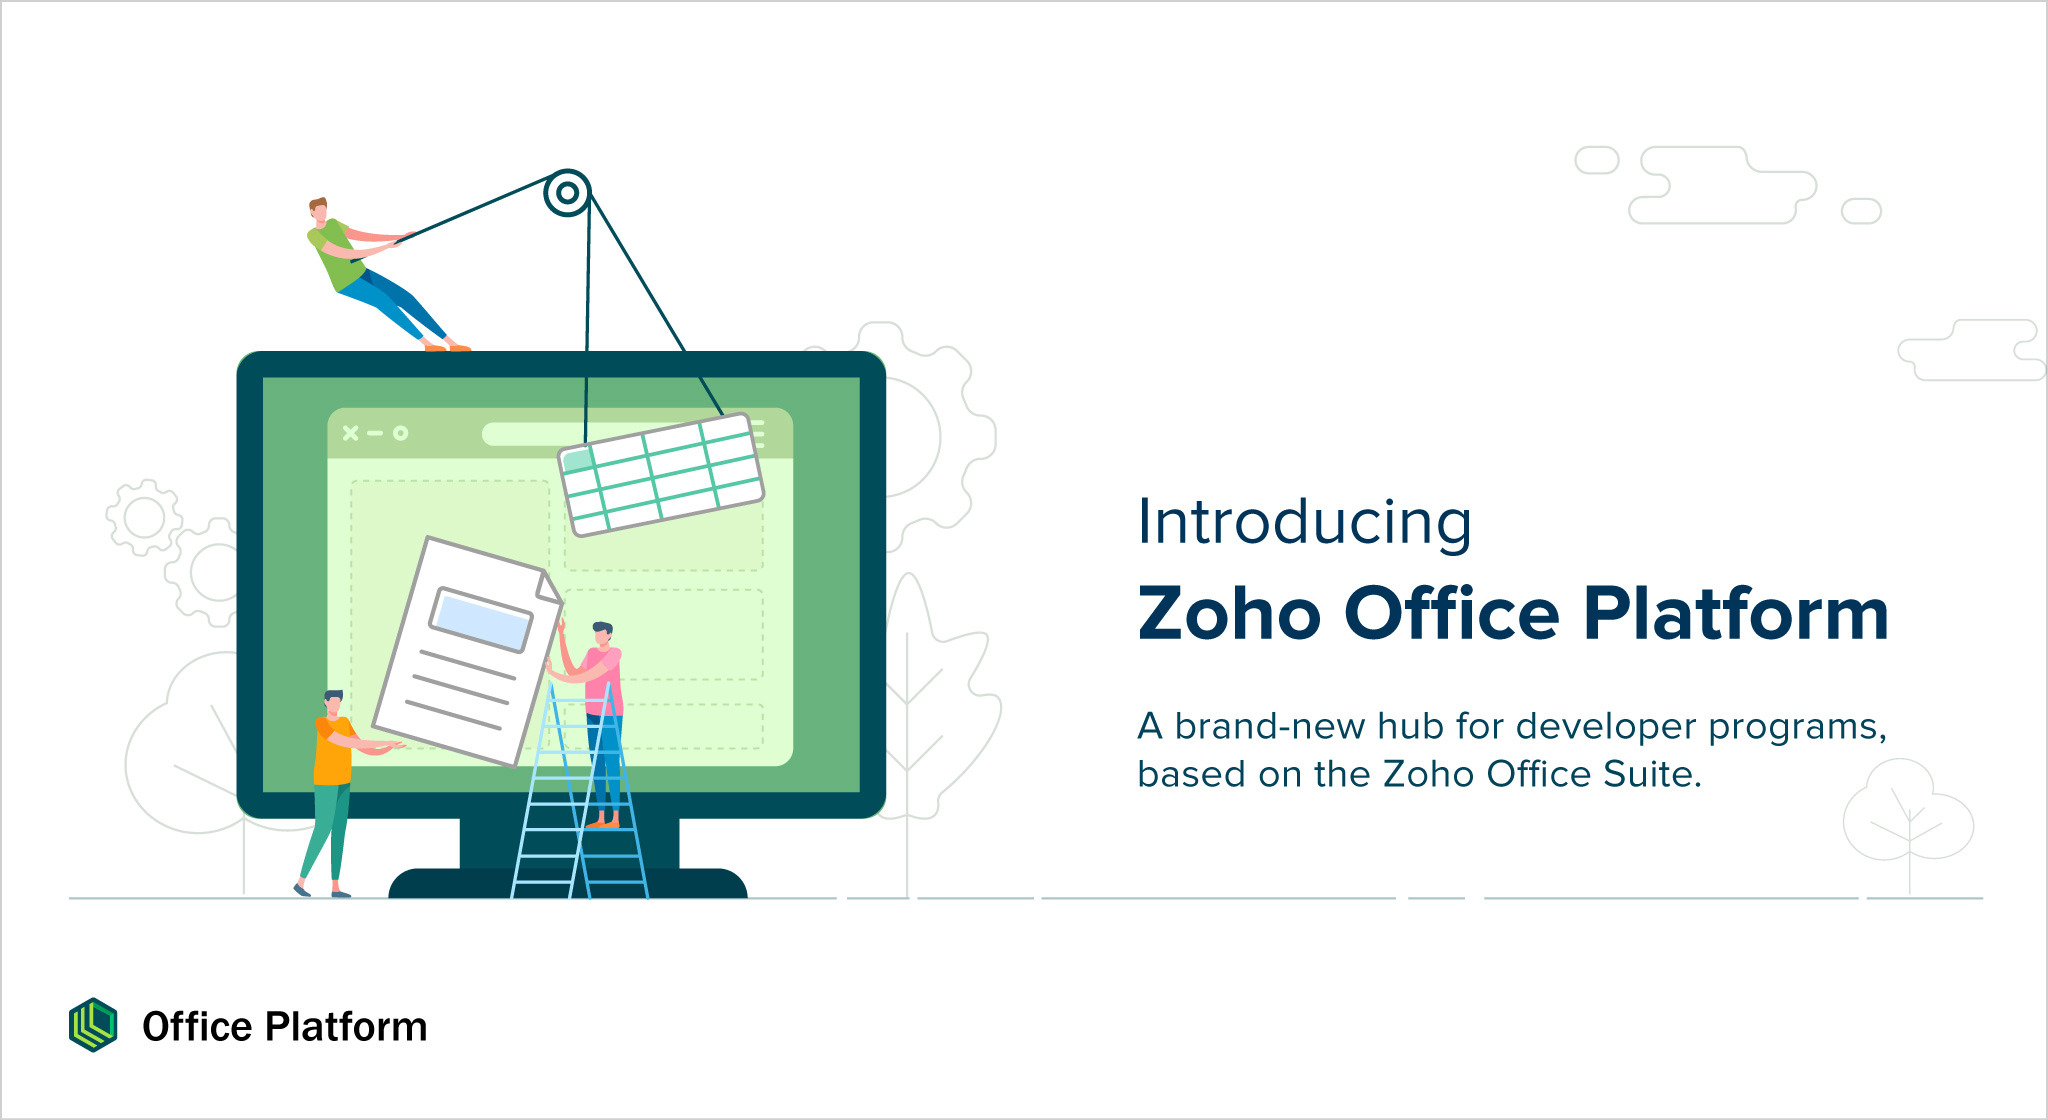 Build integrated solutions with the Zoho Office Suite—introducing Zoho Office Platform